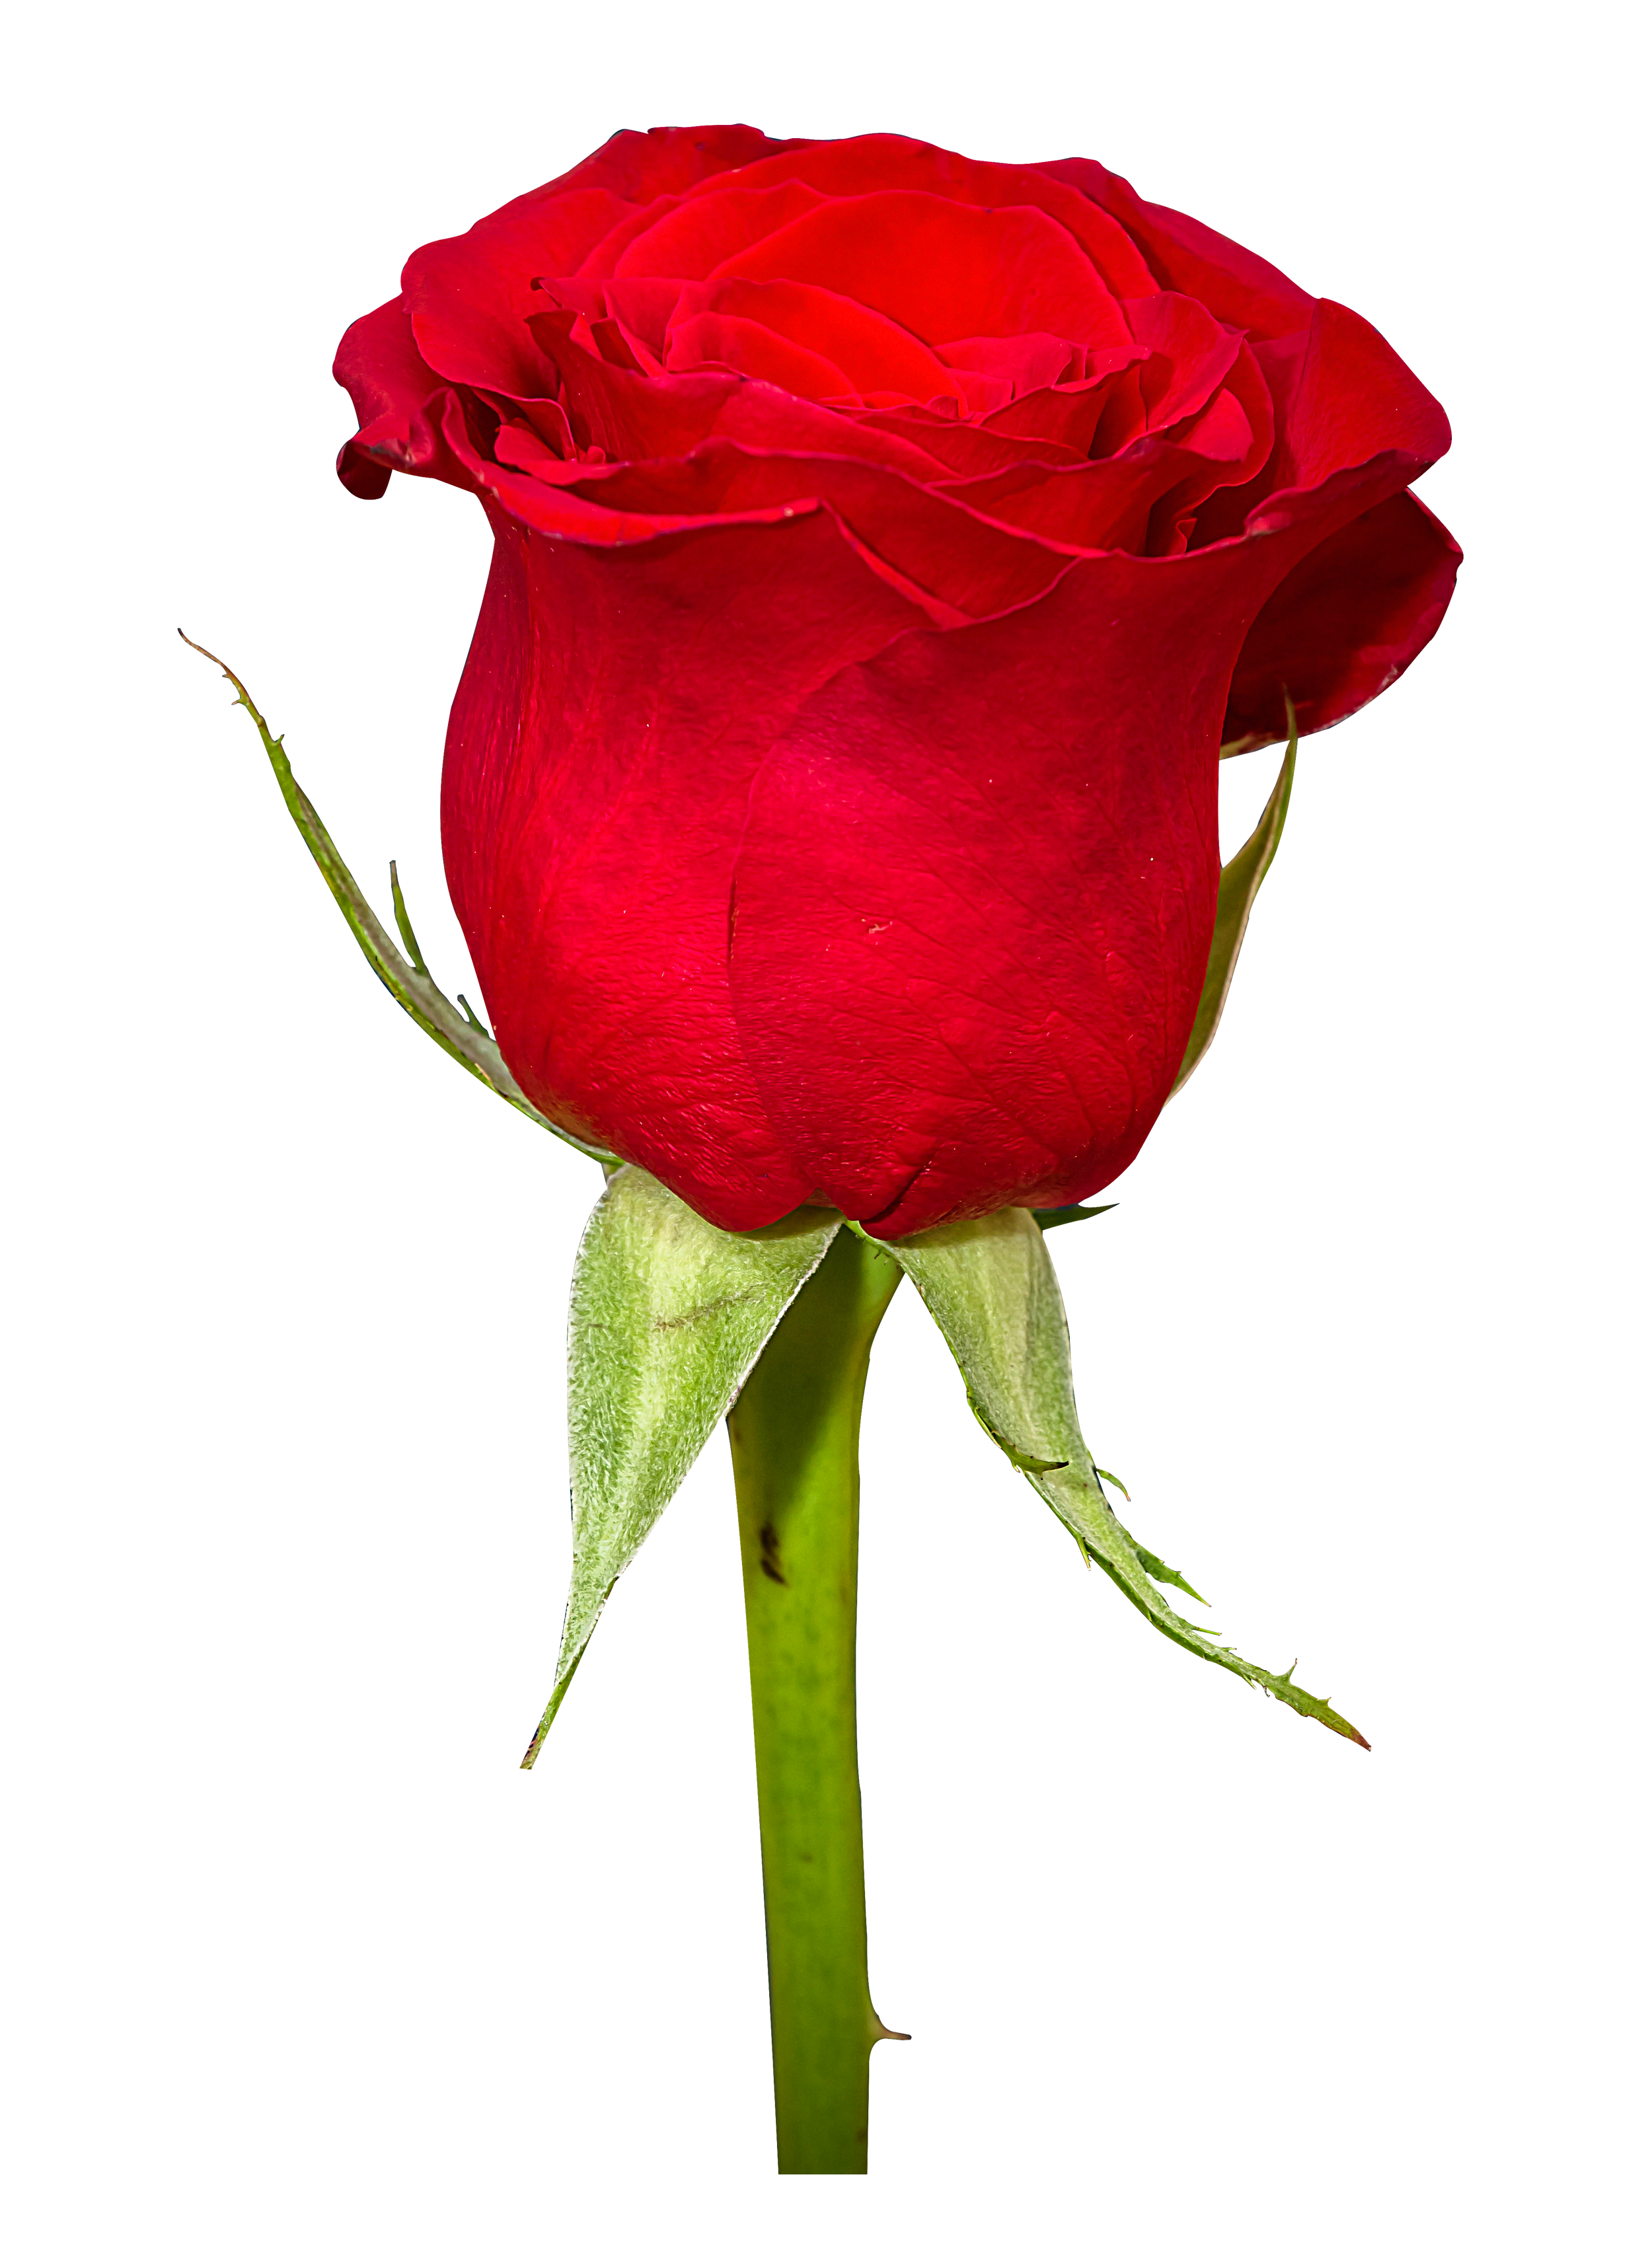 red rose flower image #8180